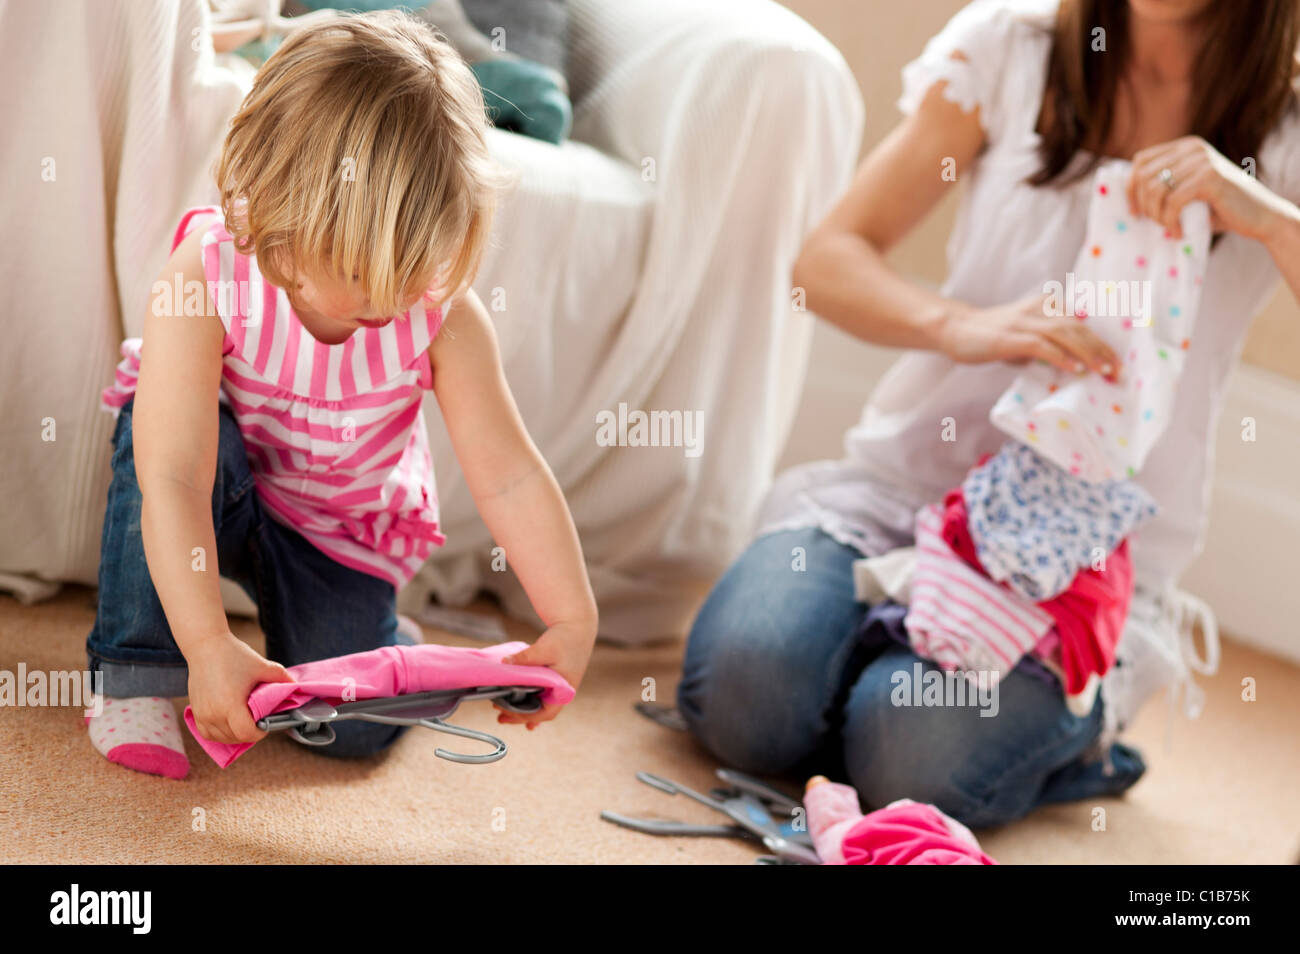 Mother and child choosing clothes to wear - Stock Image